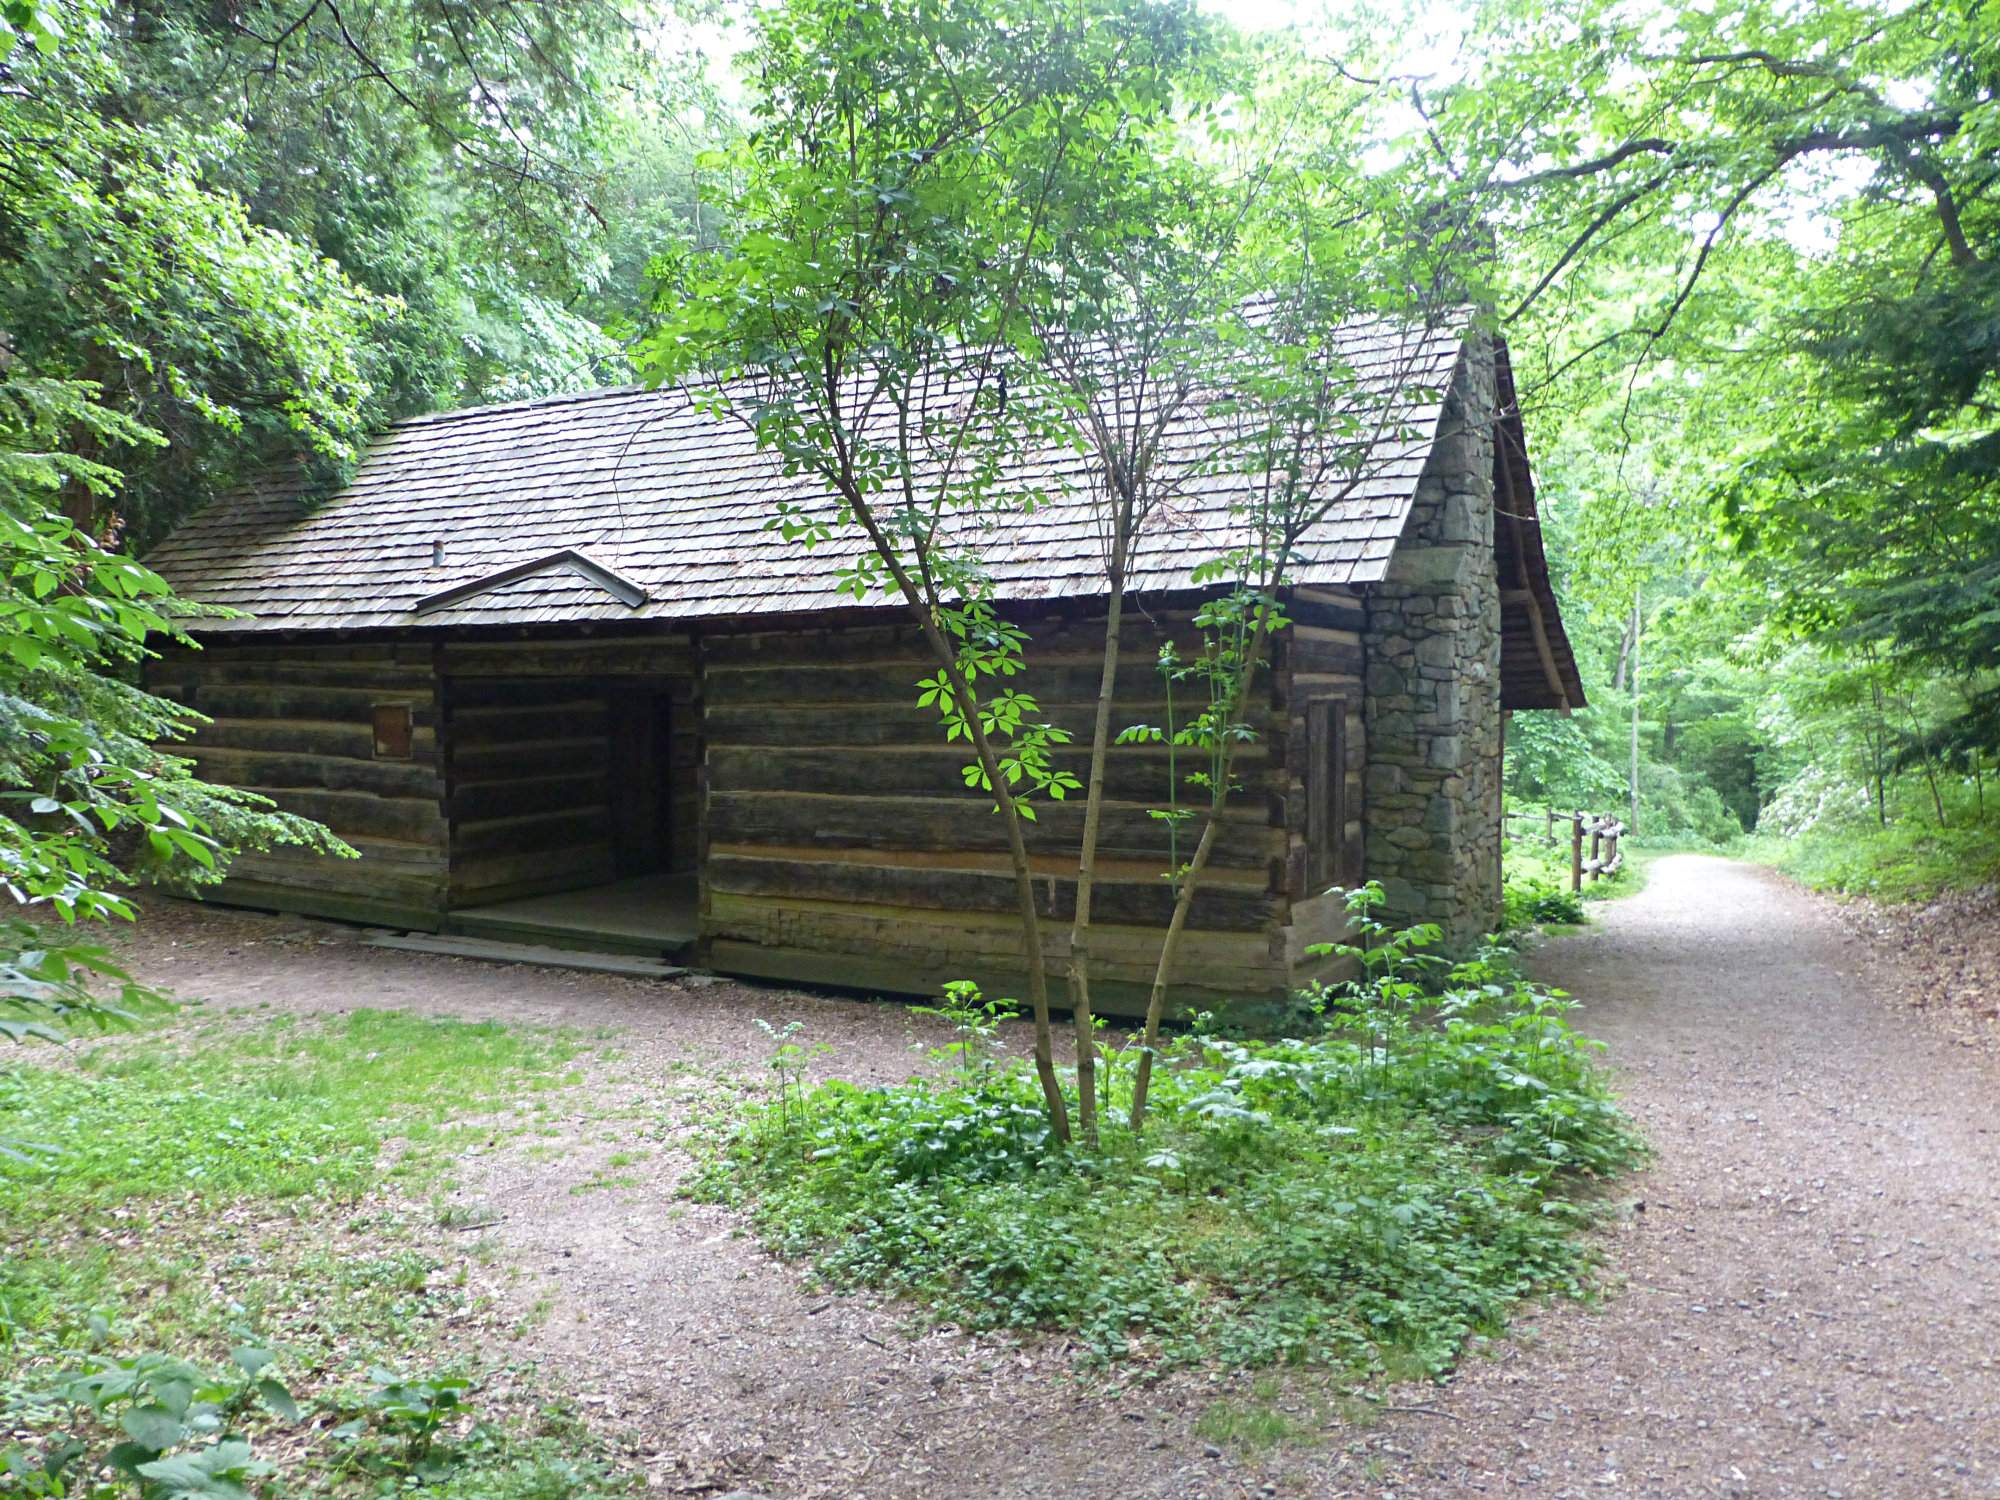 Single story log cabin with a wide dirt path running along side it in a sunny park like setting with several trees